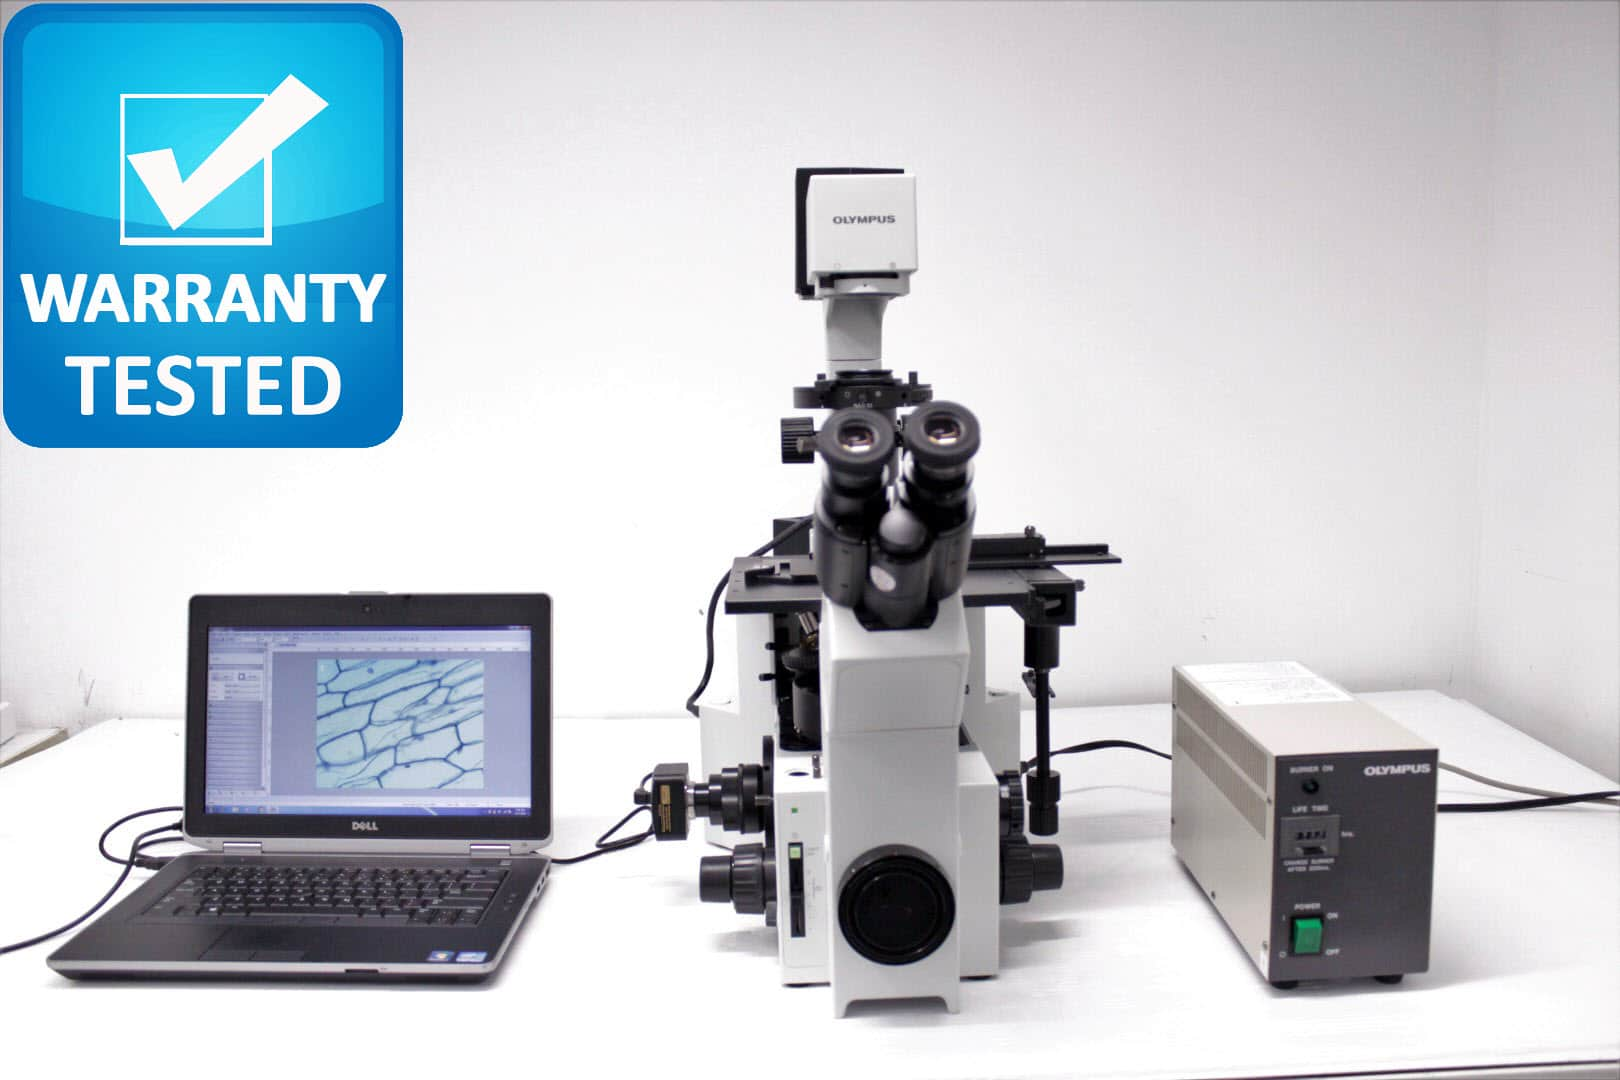 Olympus IX70 Inverted Fluorescence Phase Contrast Microscope Unit2